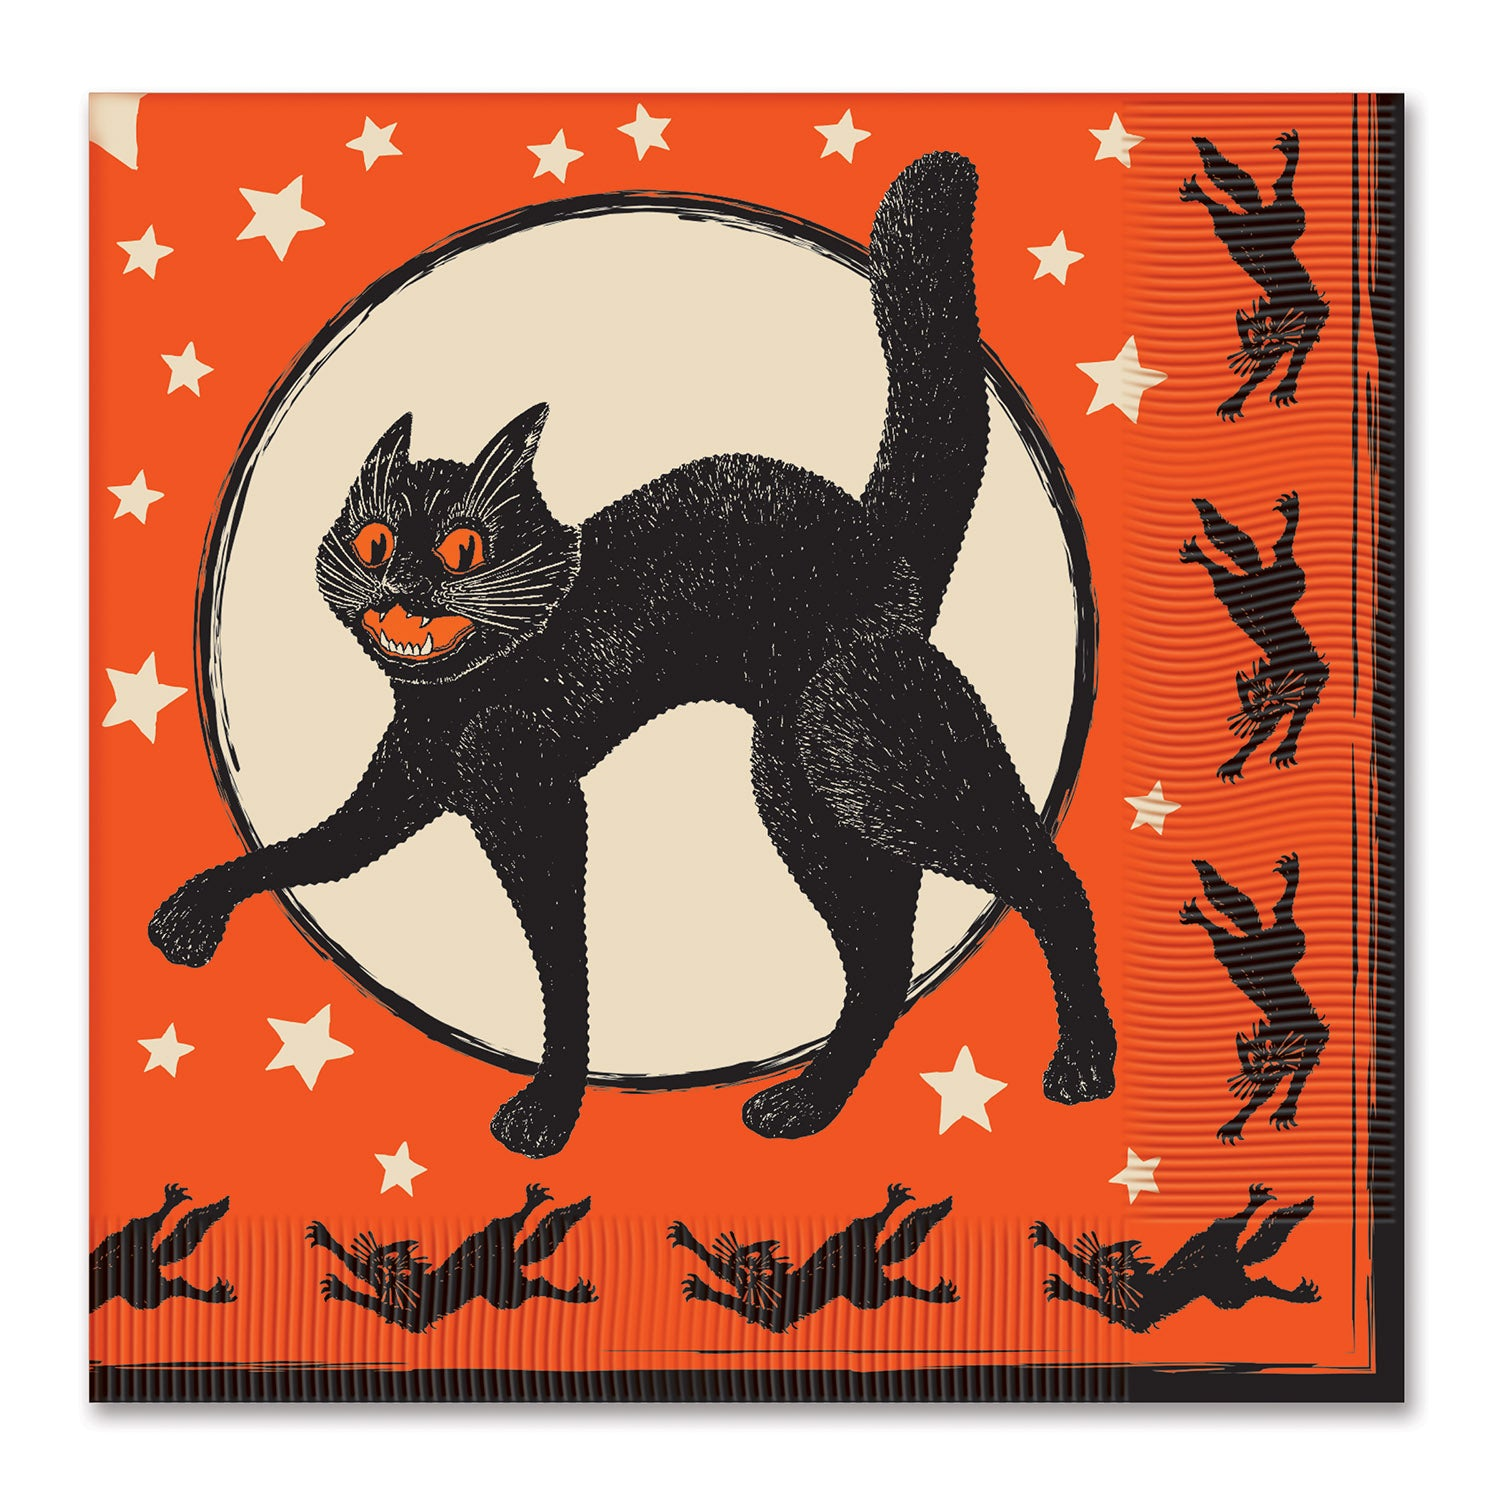 Vintage Halloween Luncheon Napkins (16/Pkg) by Beistle - Halloween Theme Decorations